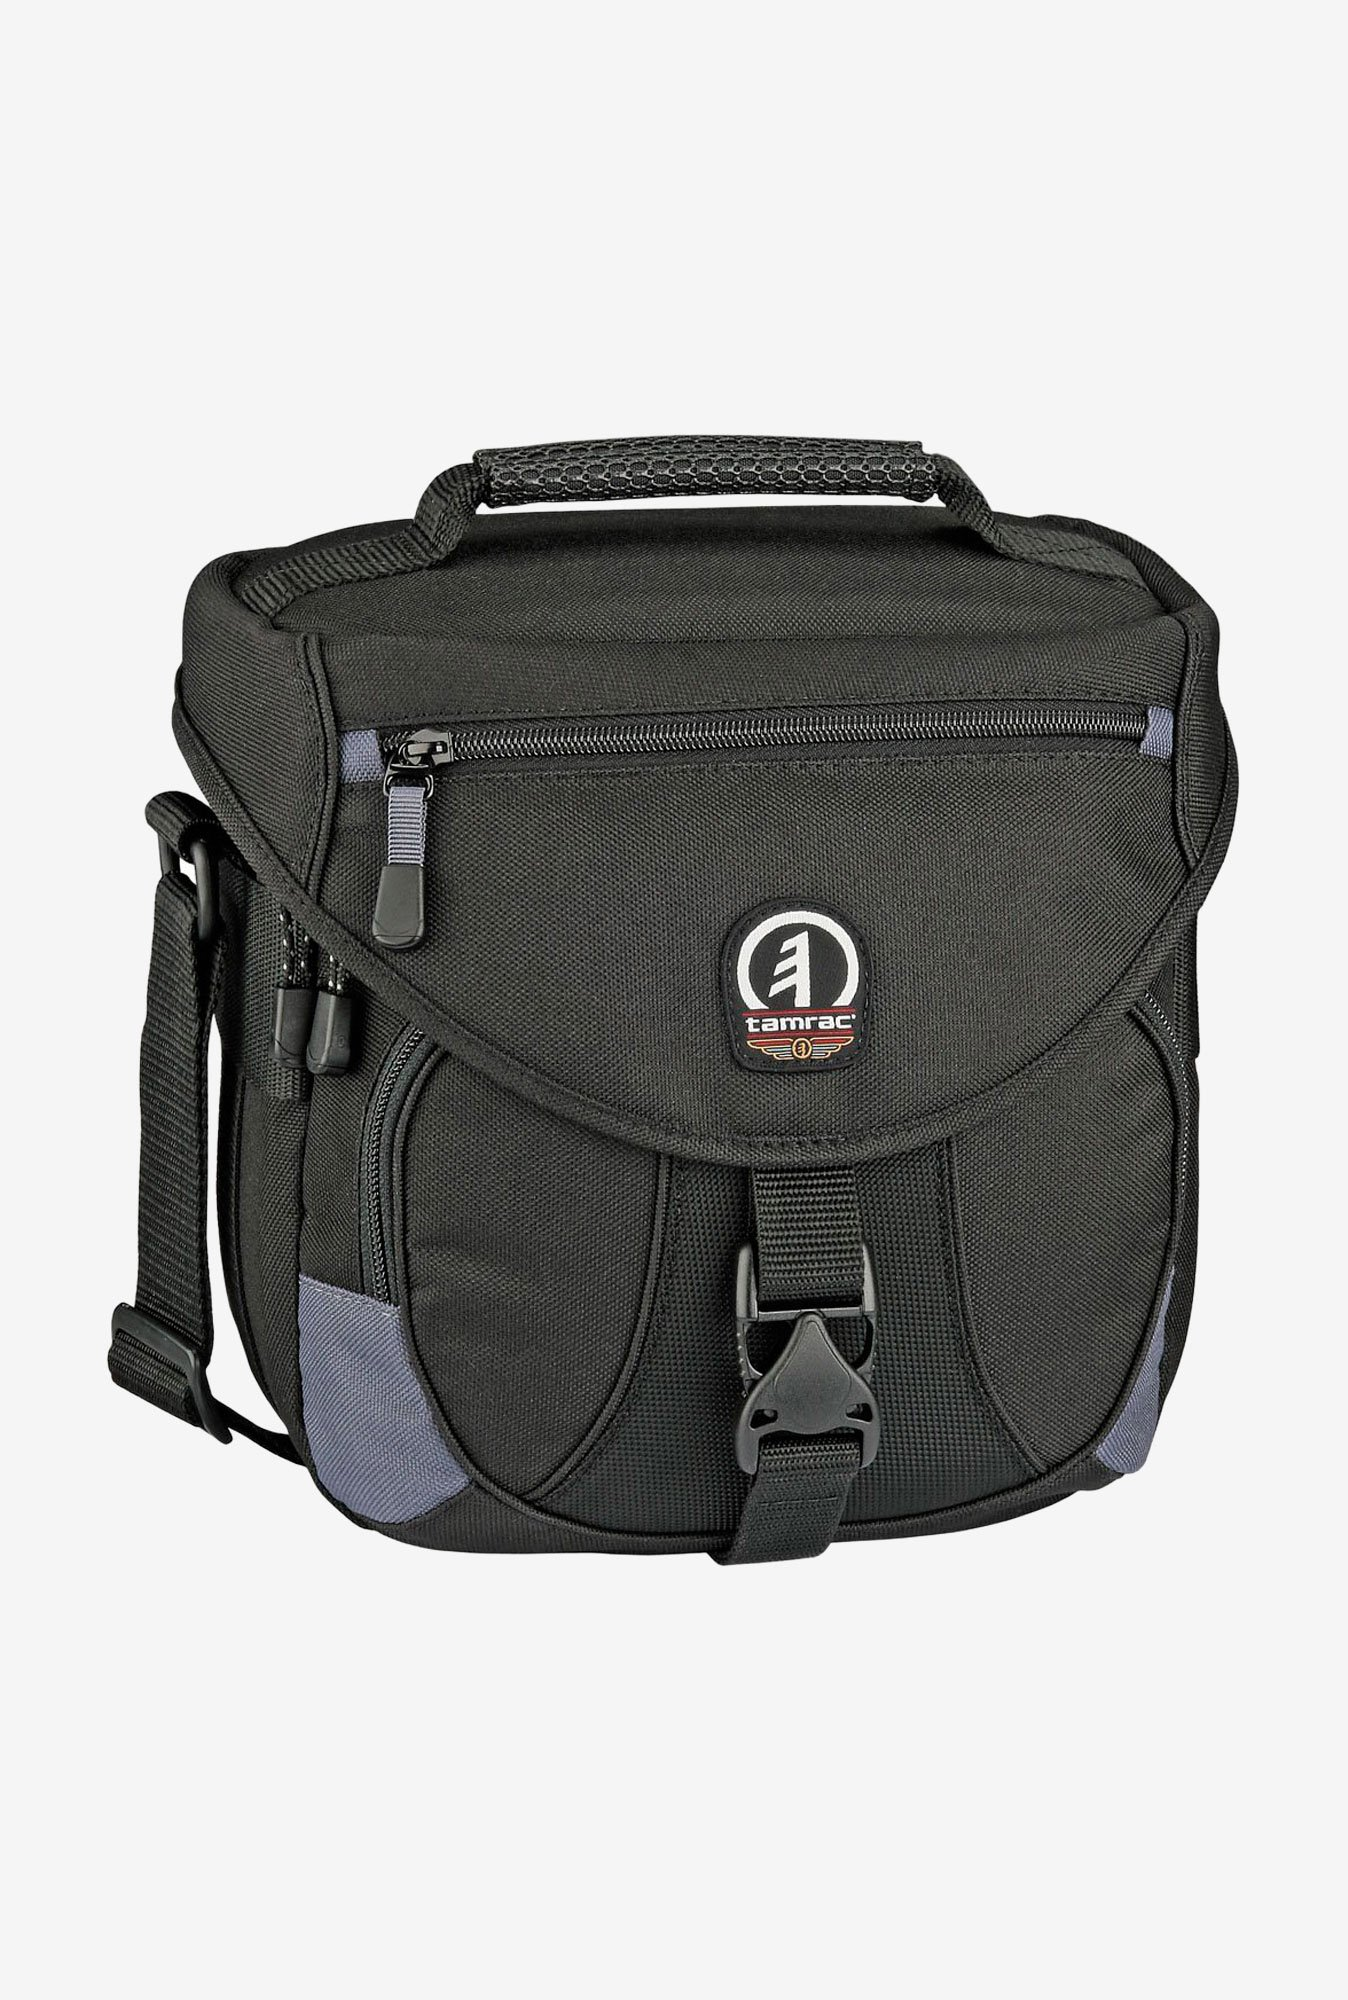 Tamrac Explorer 2 550201 Camera Bag Black